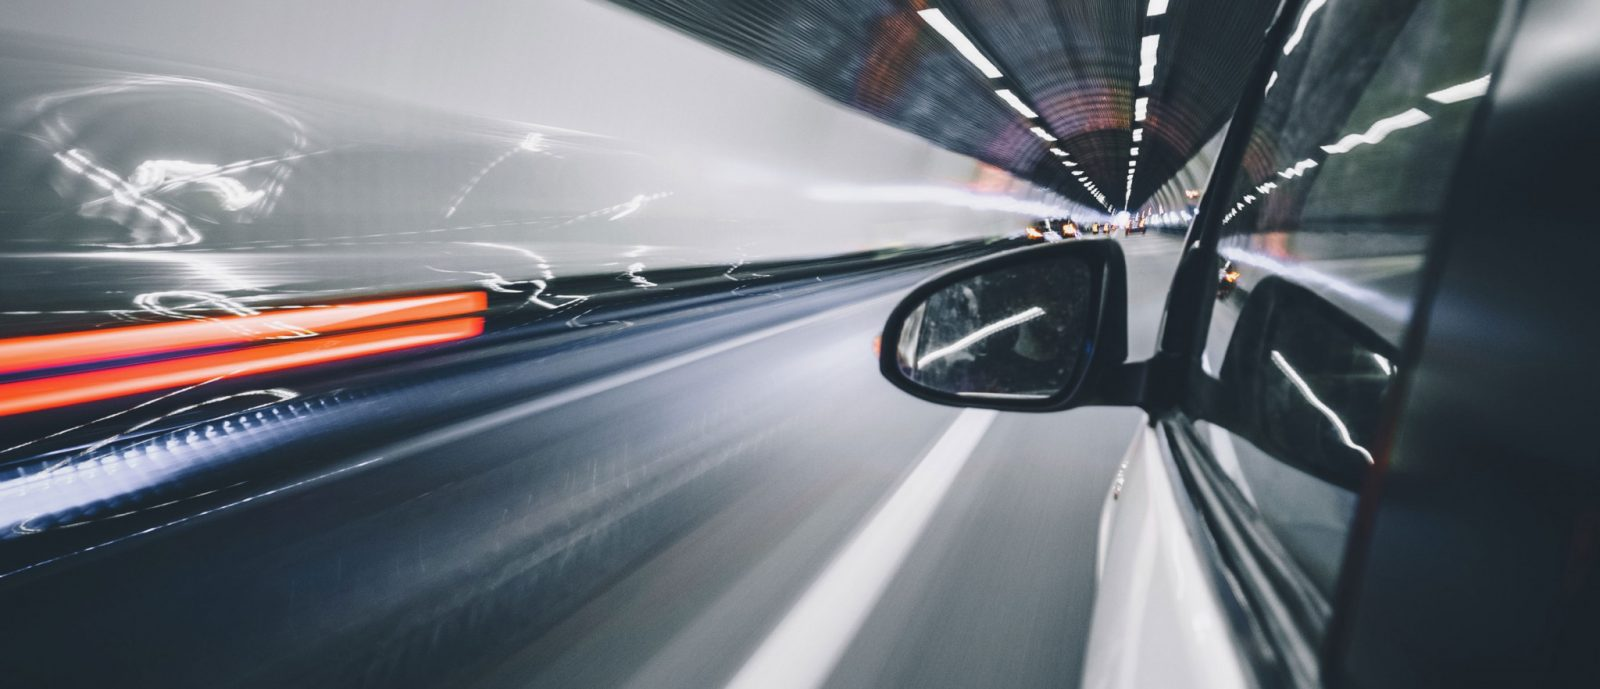 trusted identities for connected vehicles